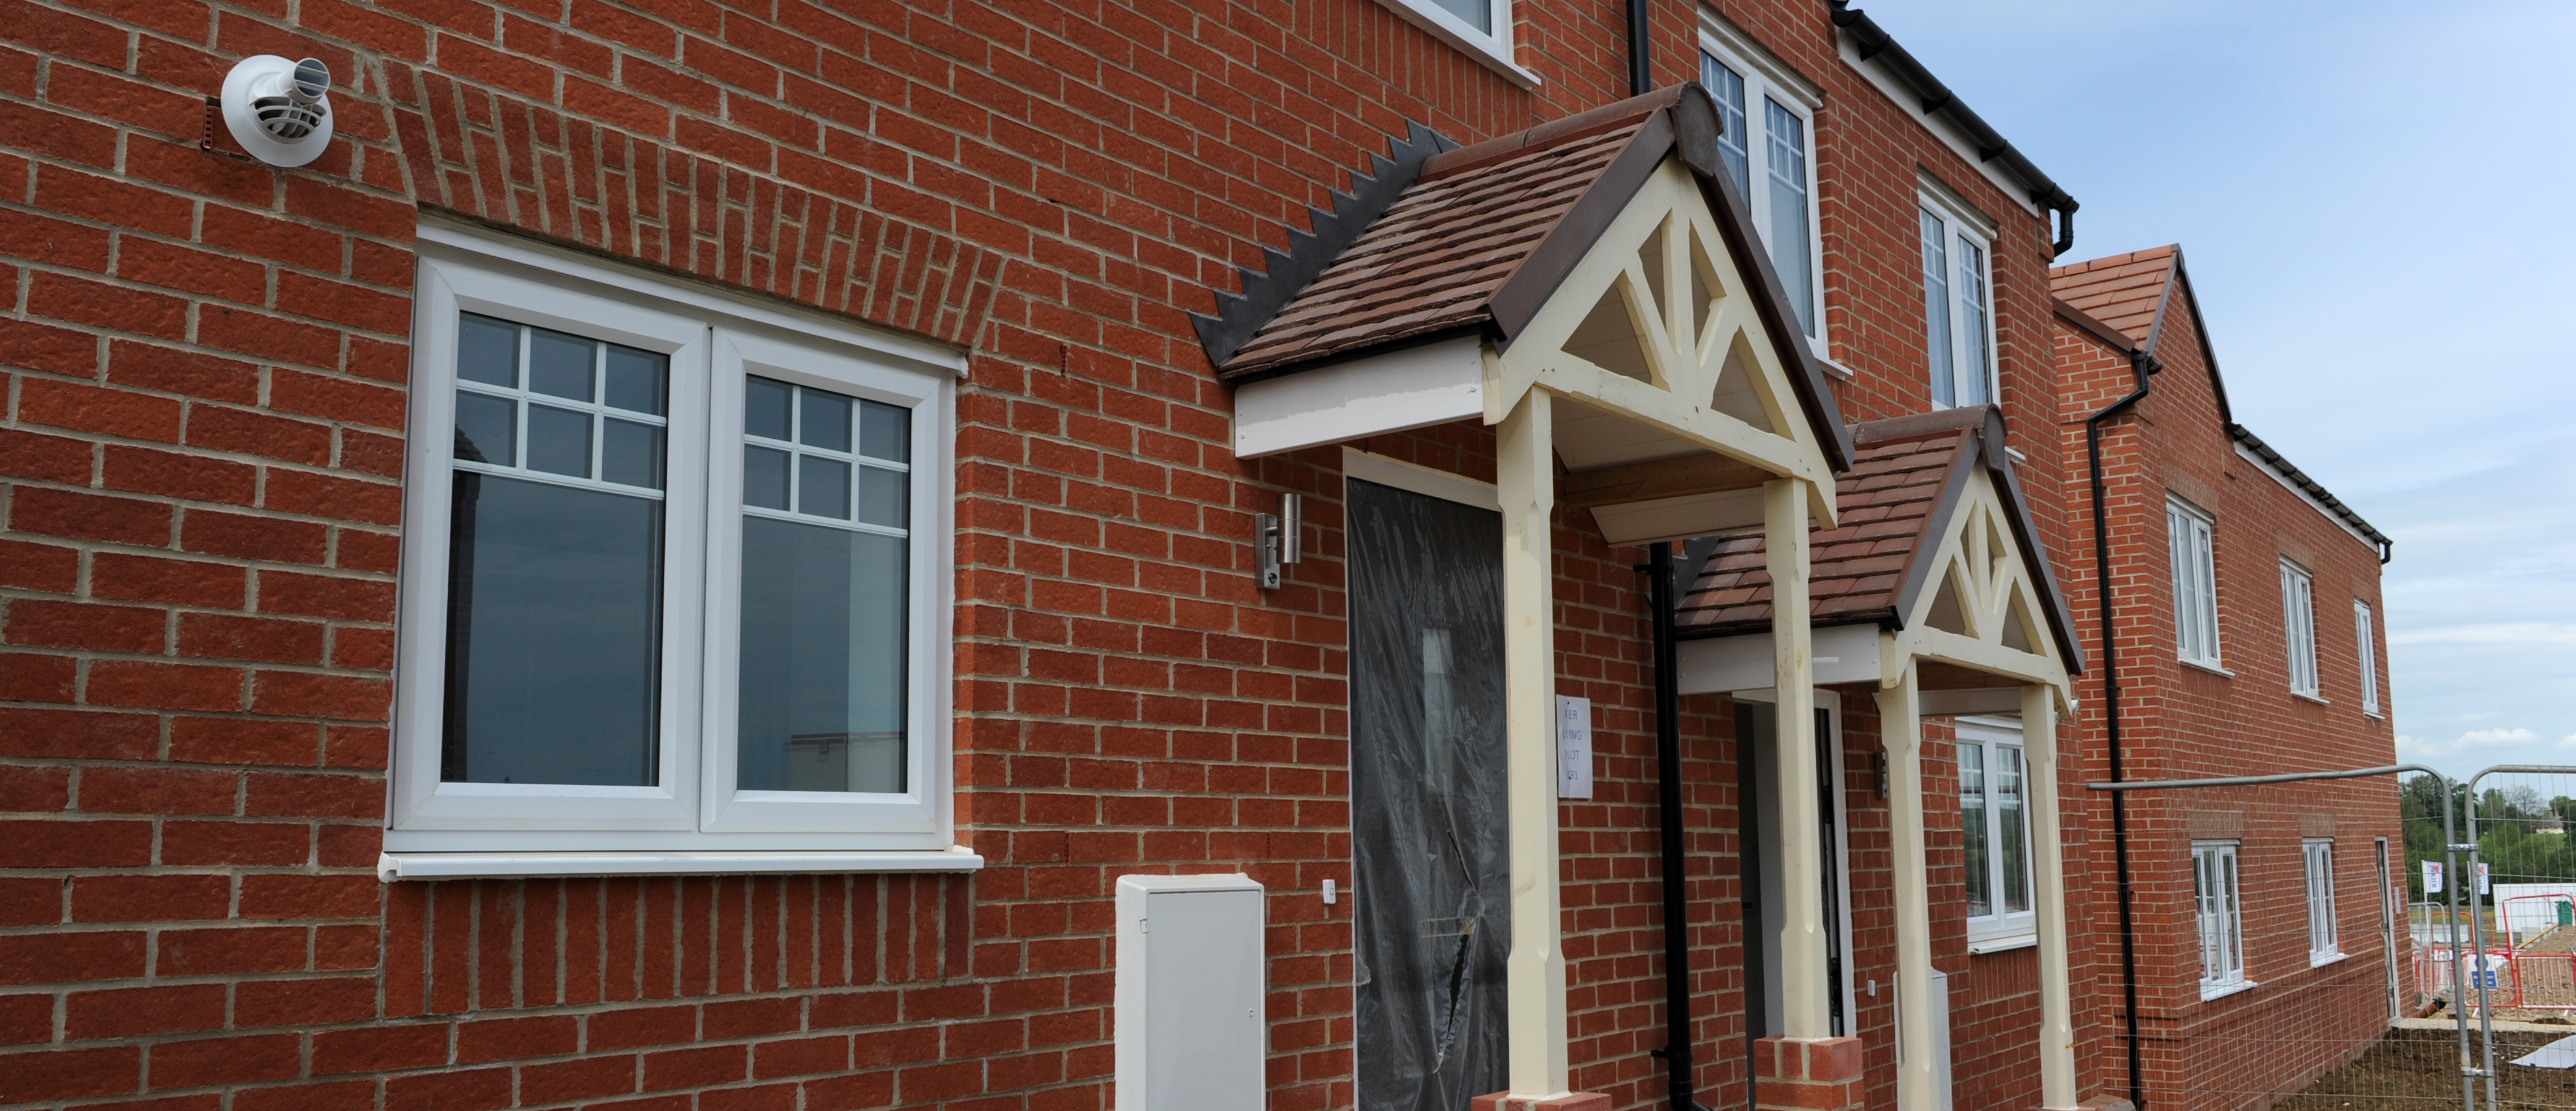 CKH welcomes new homes in Whittlesey